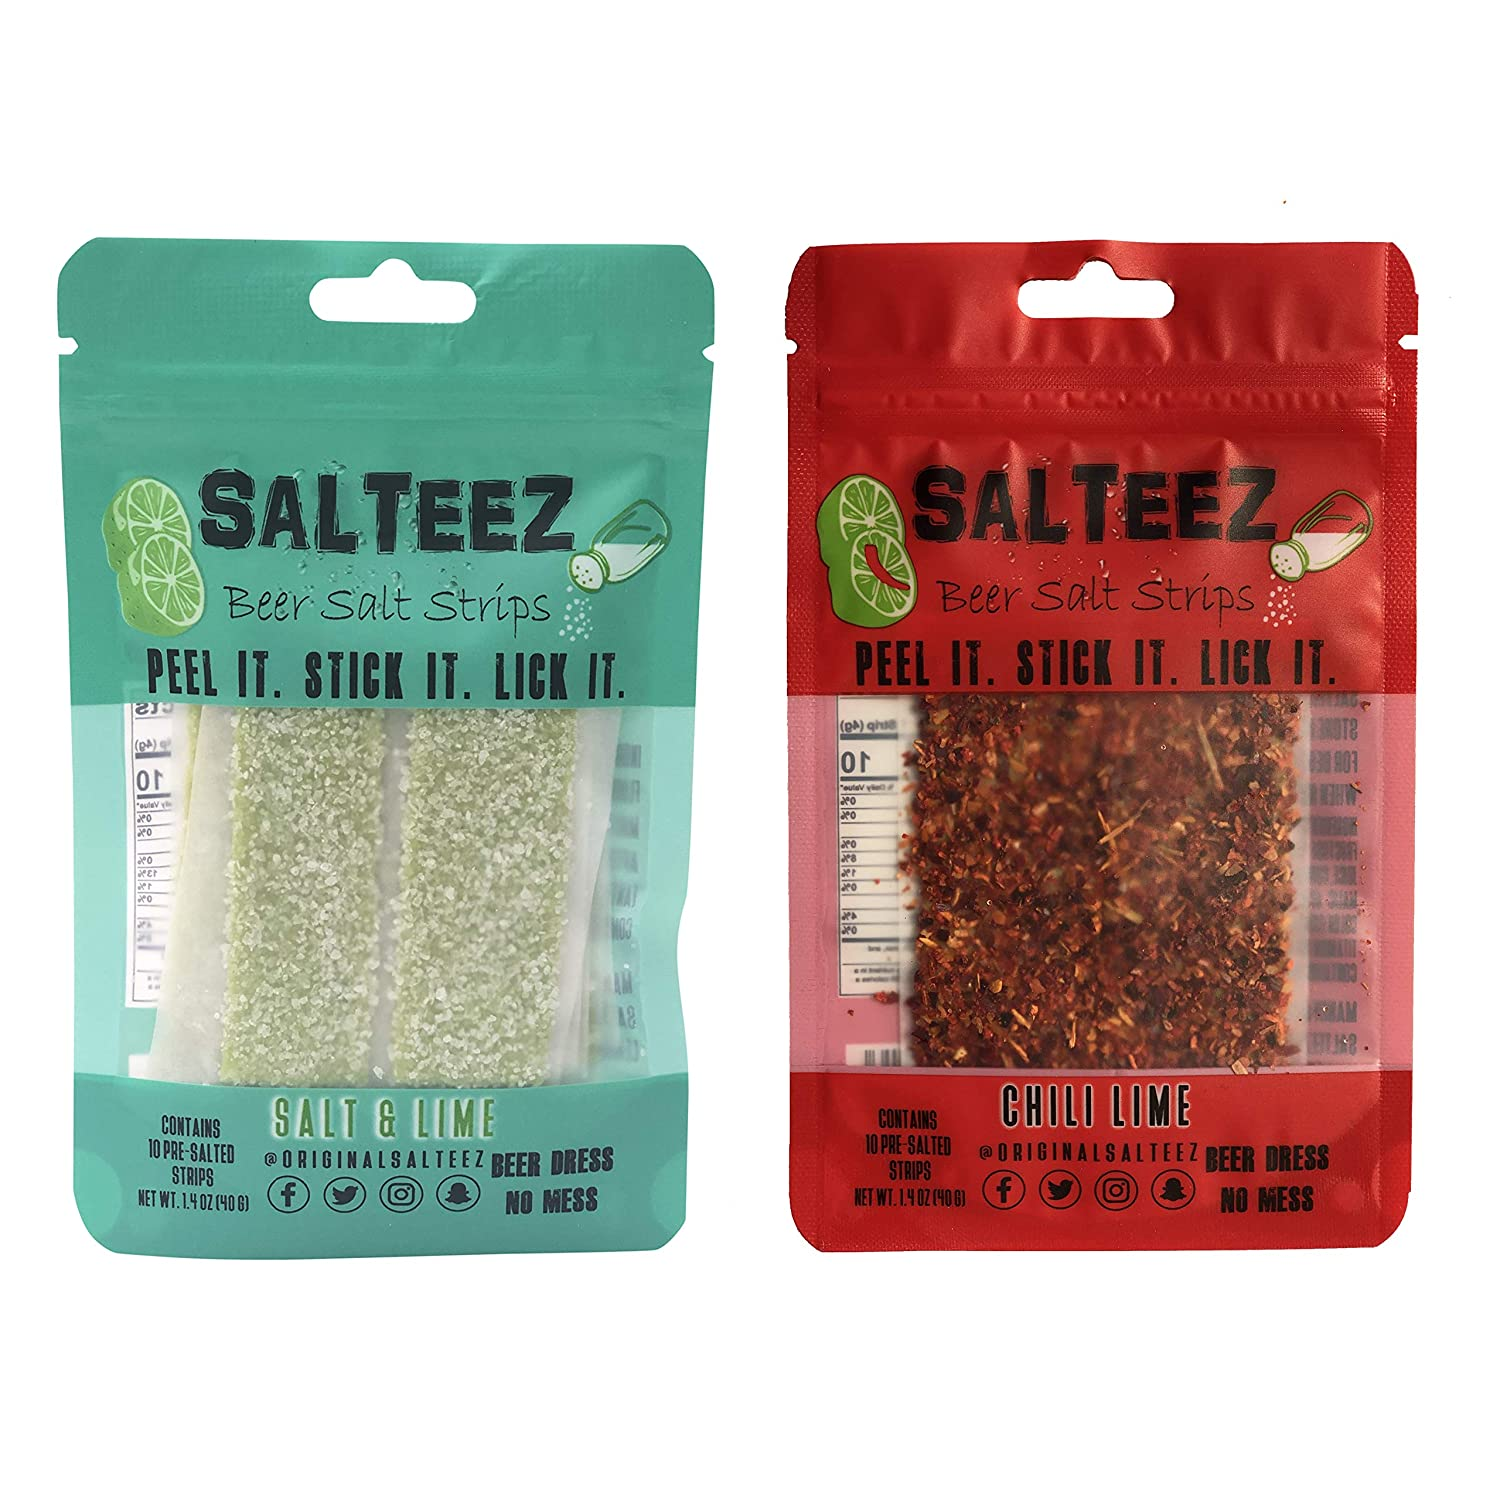 Salteez Beer Salt Recommended Arlington Mall Strips: Real Flavor St Lime Strips That